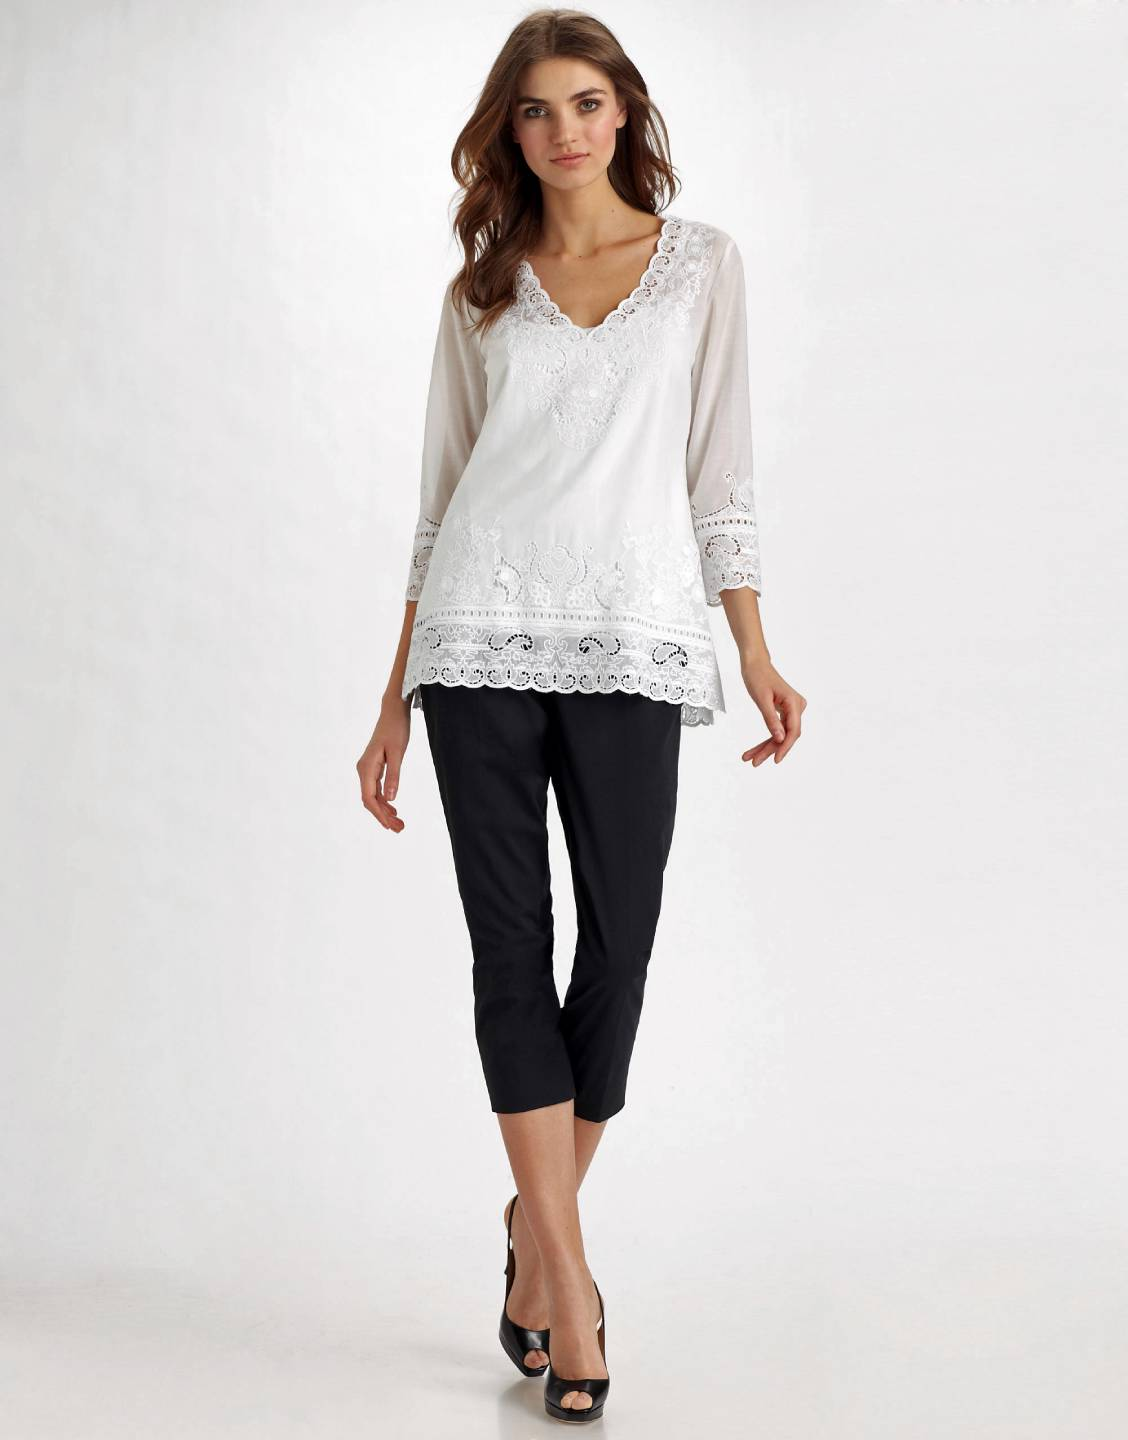 Elie Tahari White Eyelet Embroidered Lauren Tunic Blouse